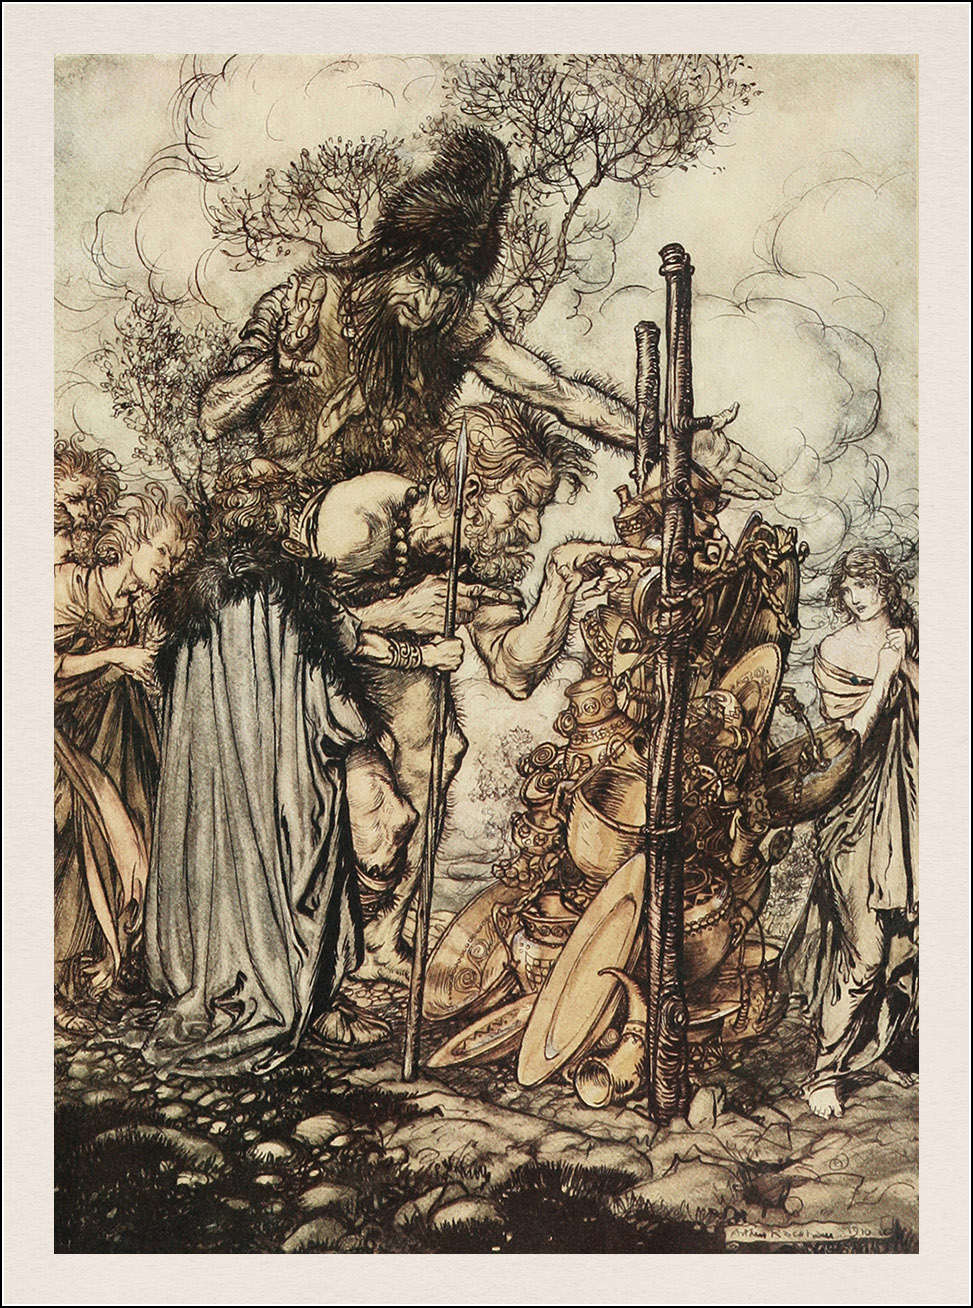 Arthur Rackham. The Rhinegold & the Valkyrie